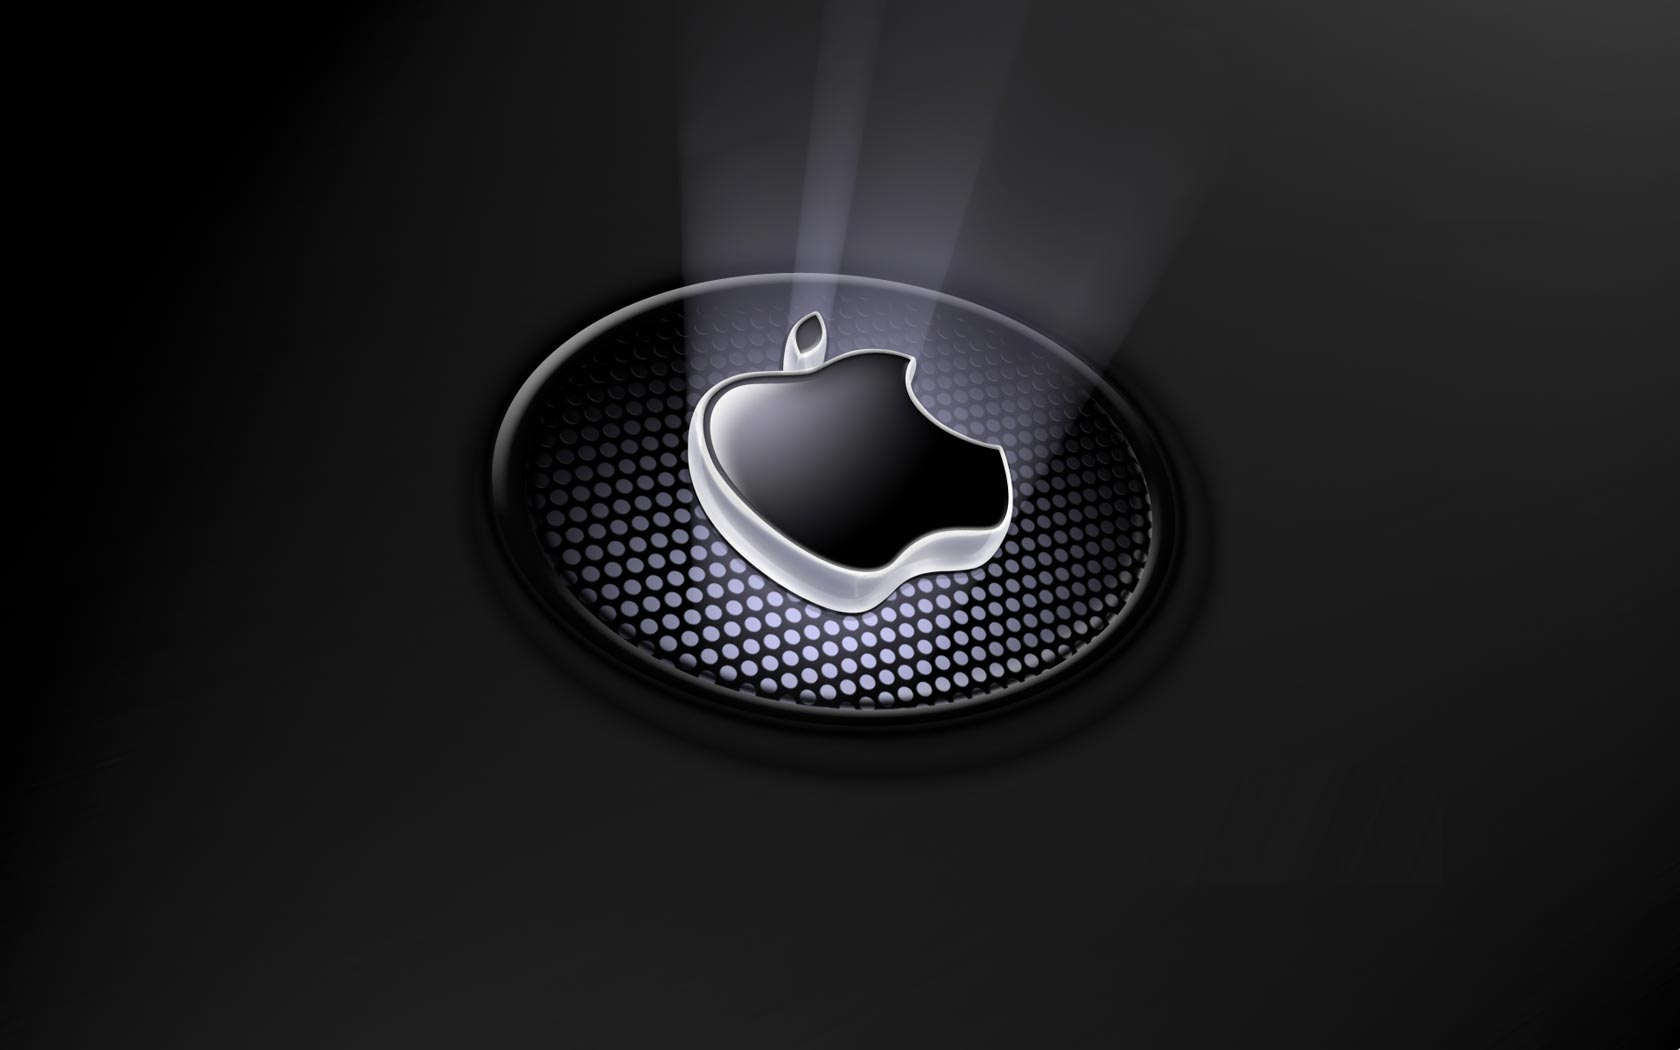 cool apple logo wallpaper #5